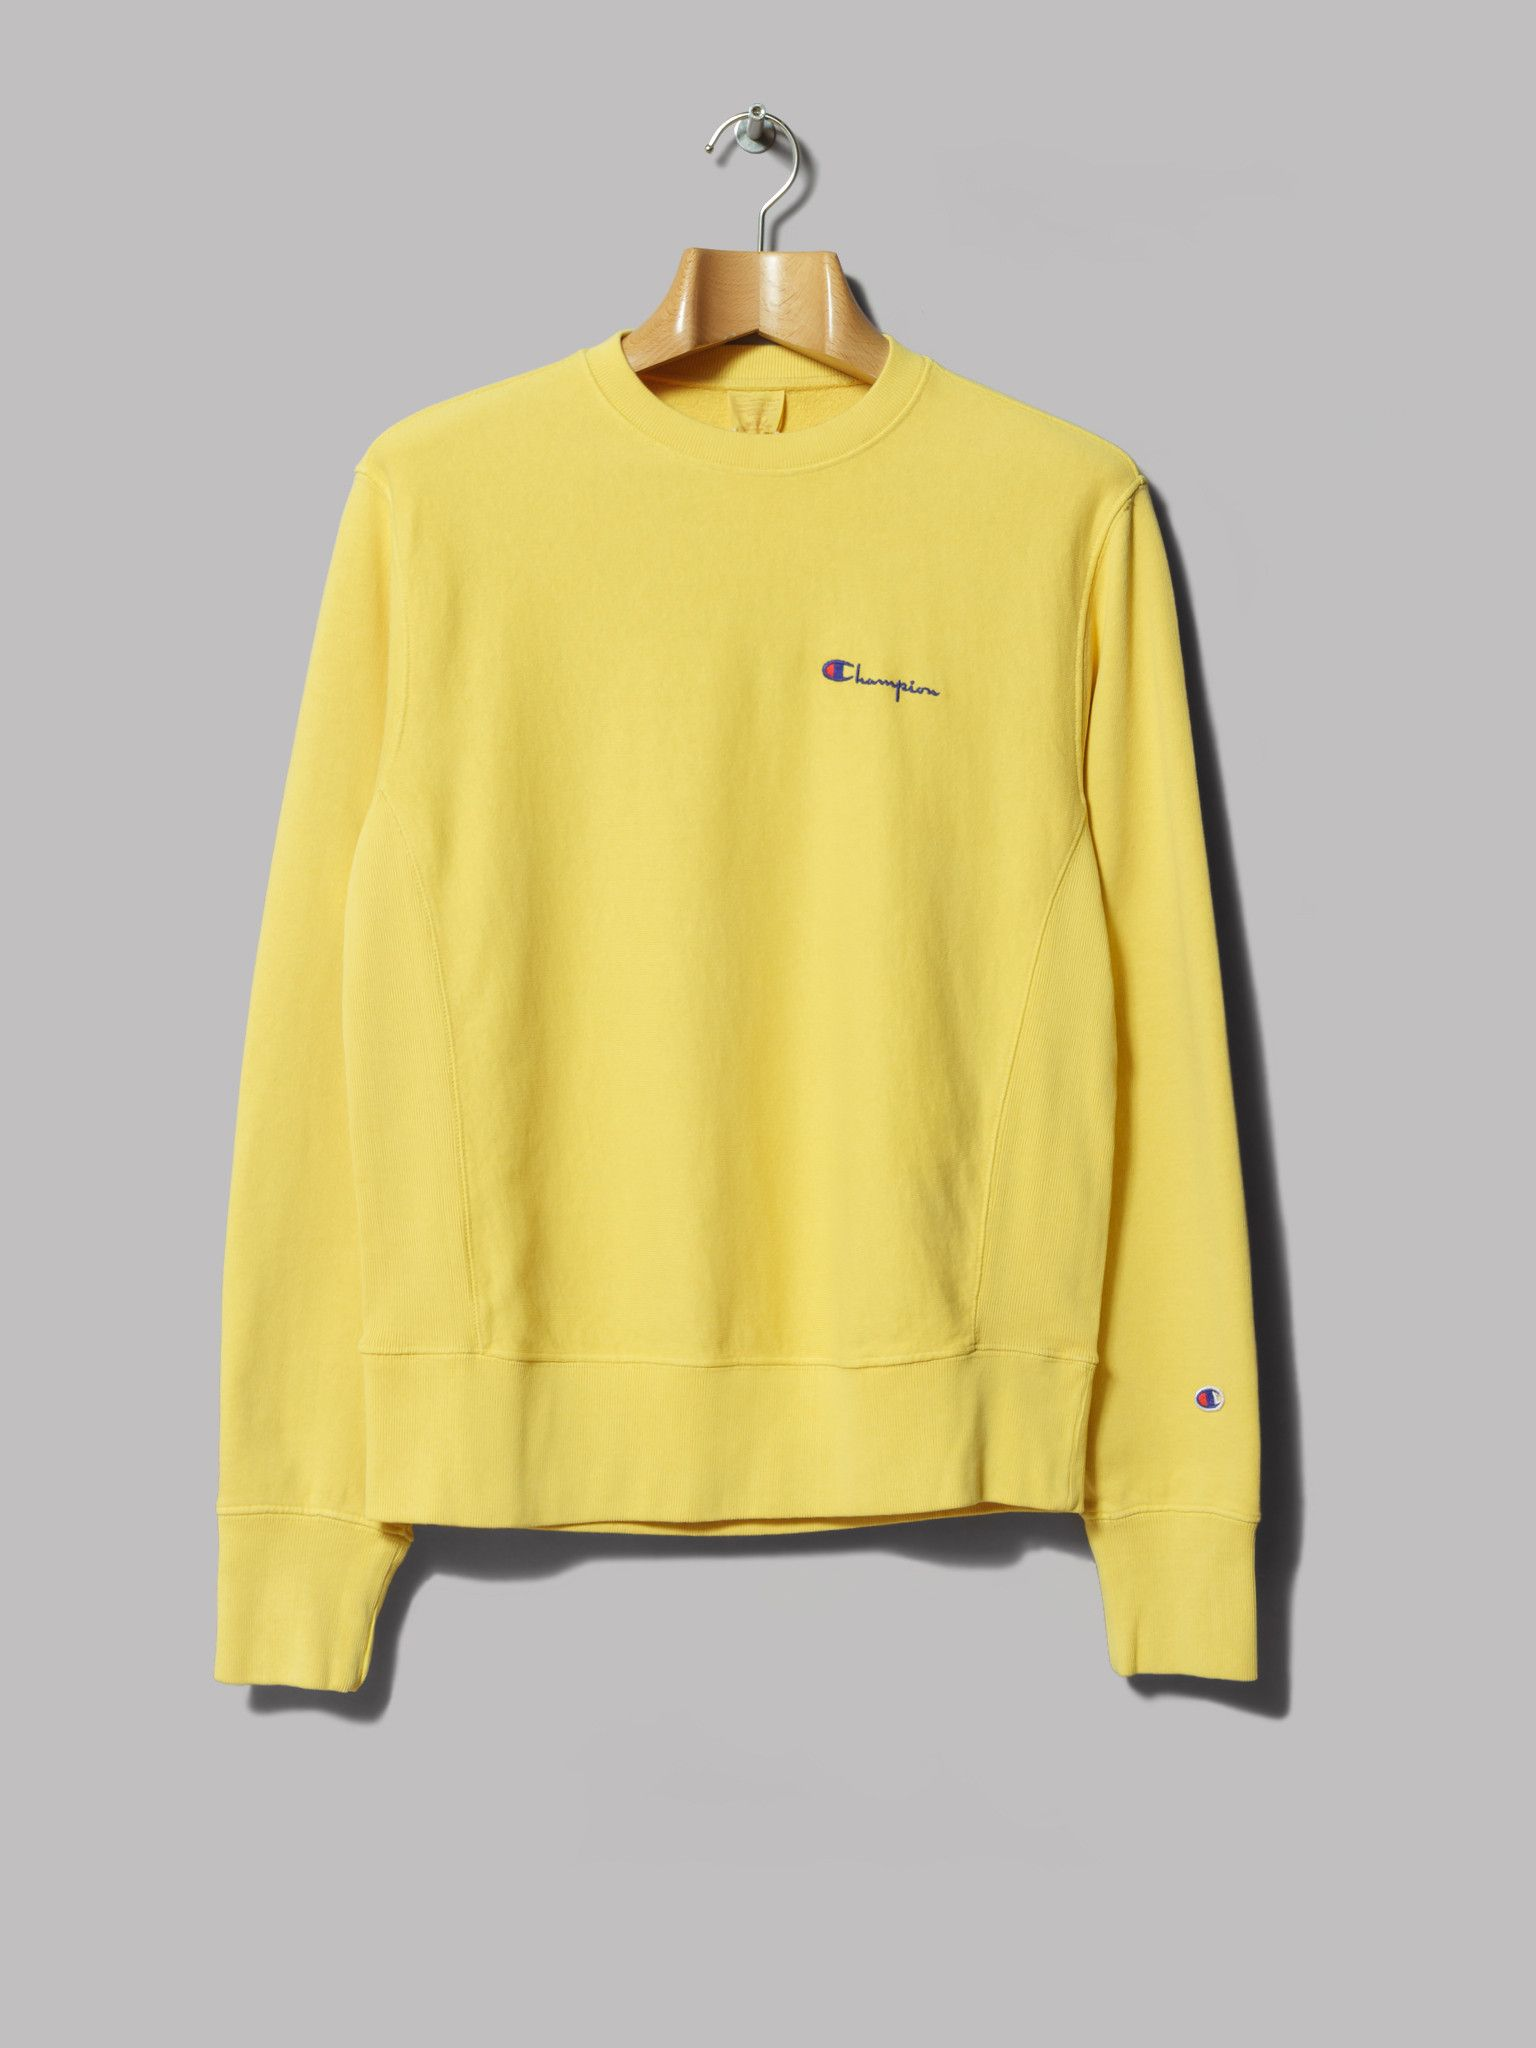 Champion Reverse Weave Crewneck Sweatshirt (Yellow)